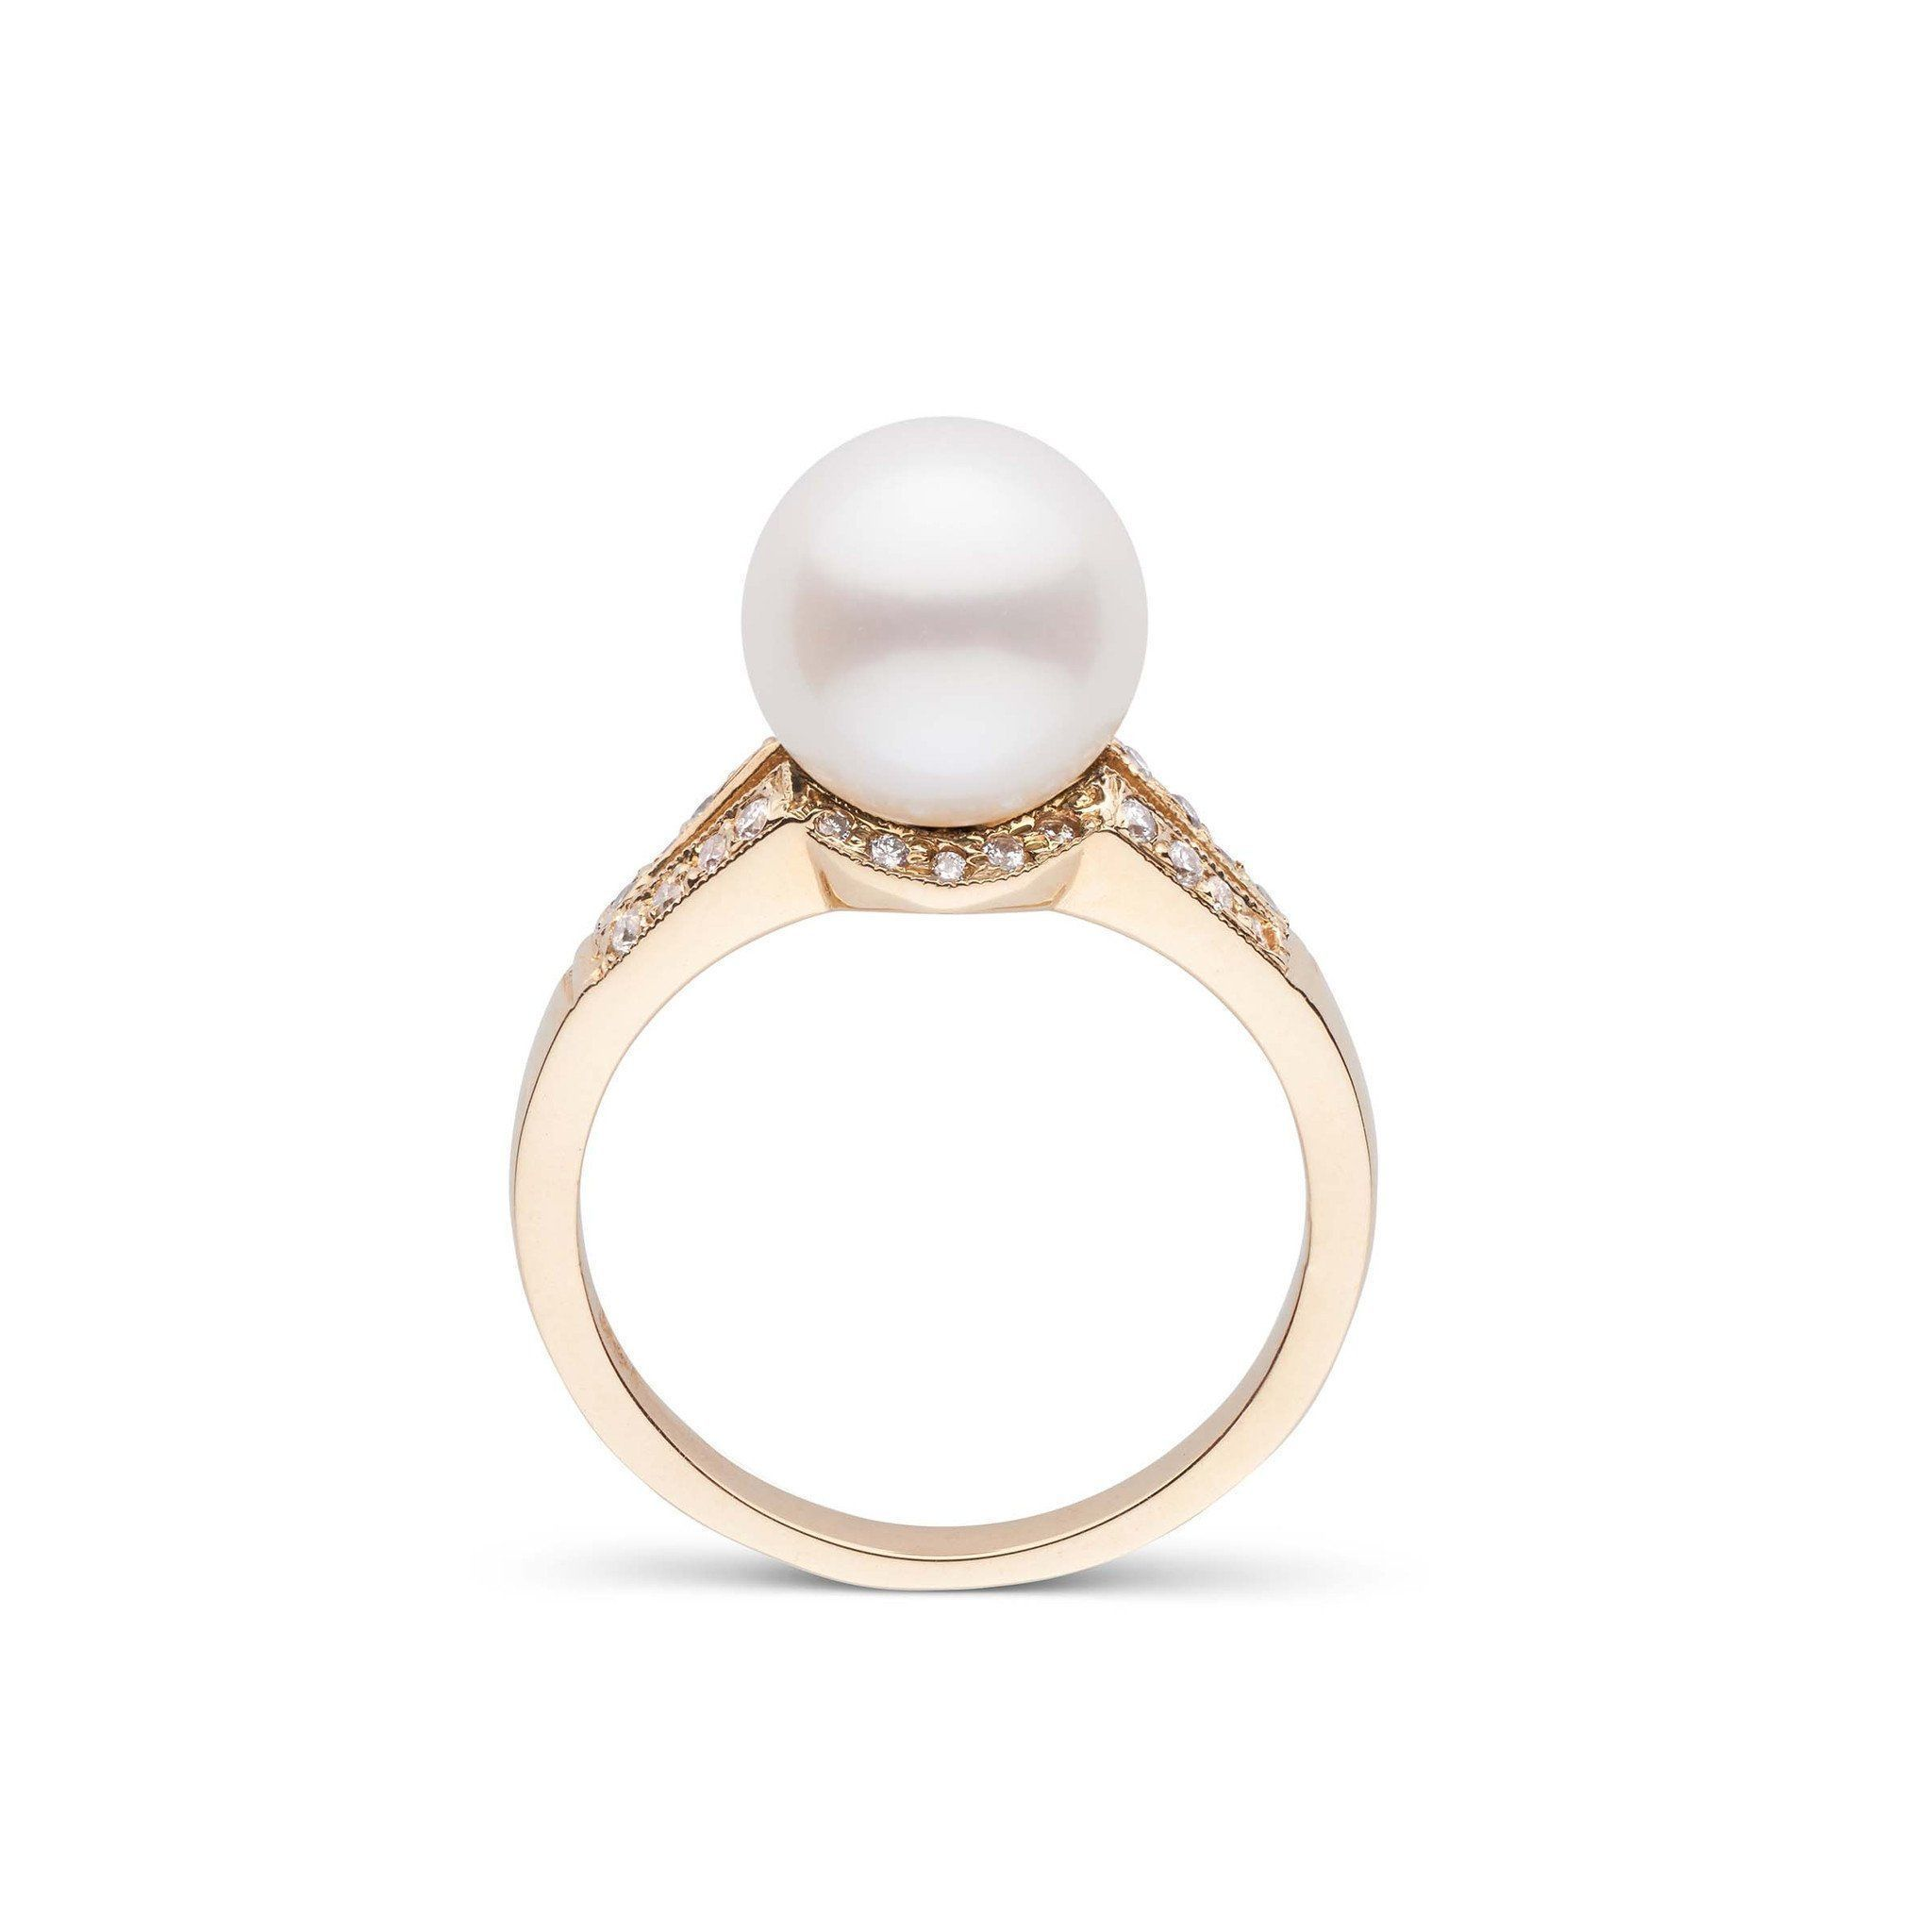 Vixen Collection White South Sea Pearl Ring 18K